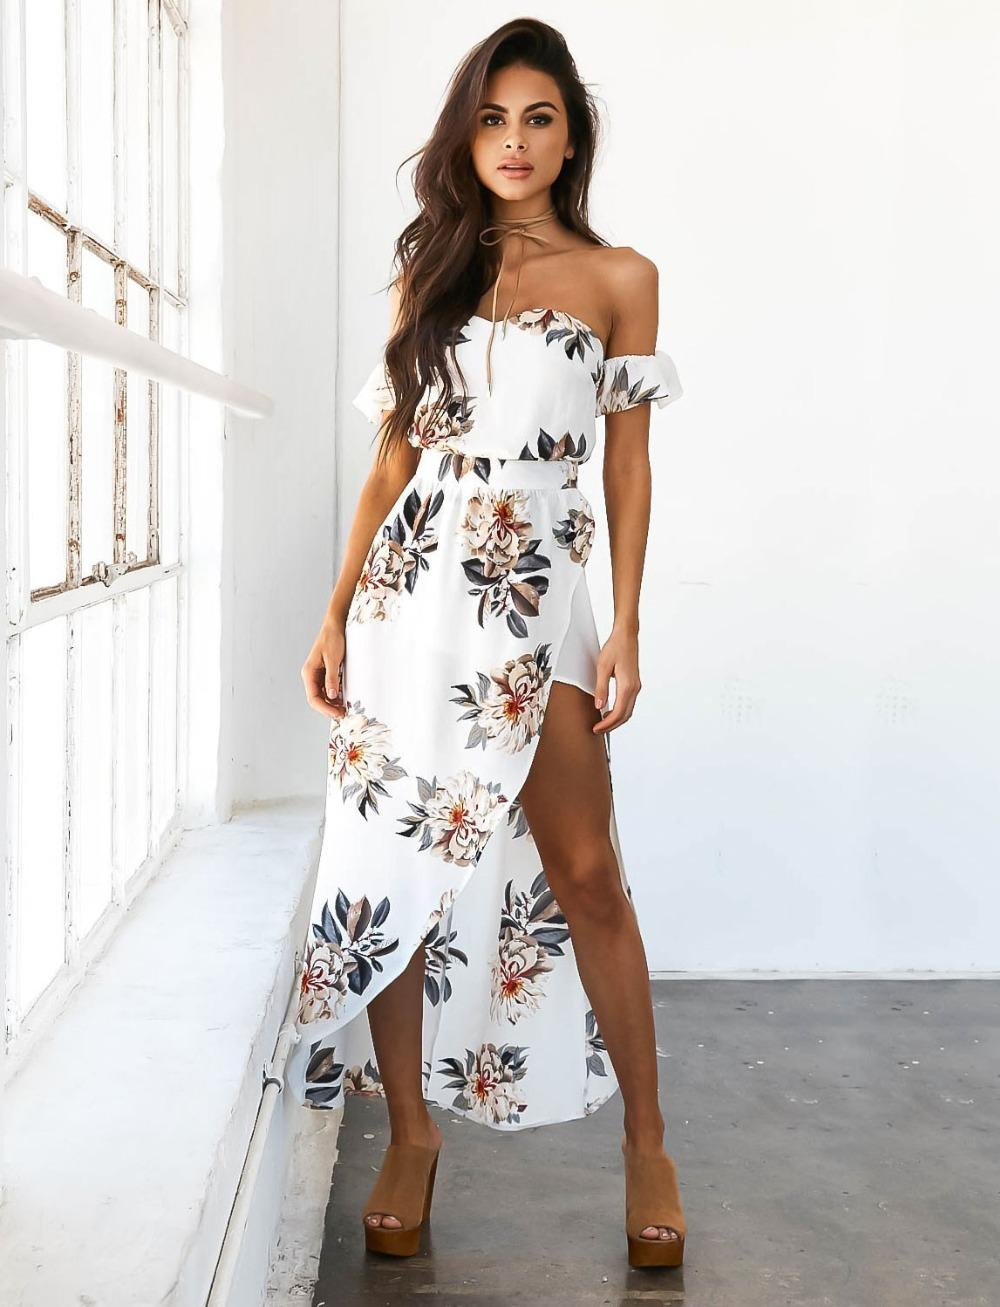 49ad5dcd76 Summer Women Bobo Slash Neck Beach Casual Floral Print Off the Shoulder  Strapless Femme Vestidos Maxi White Party Dress